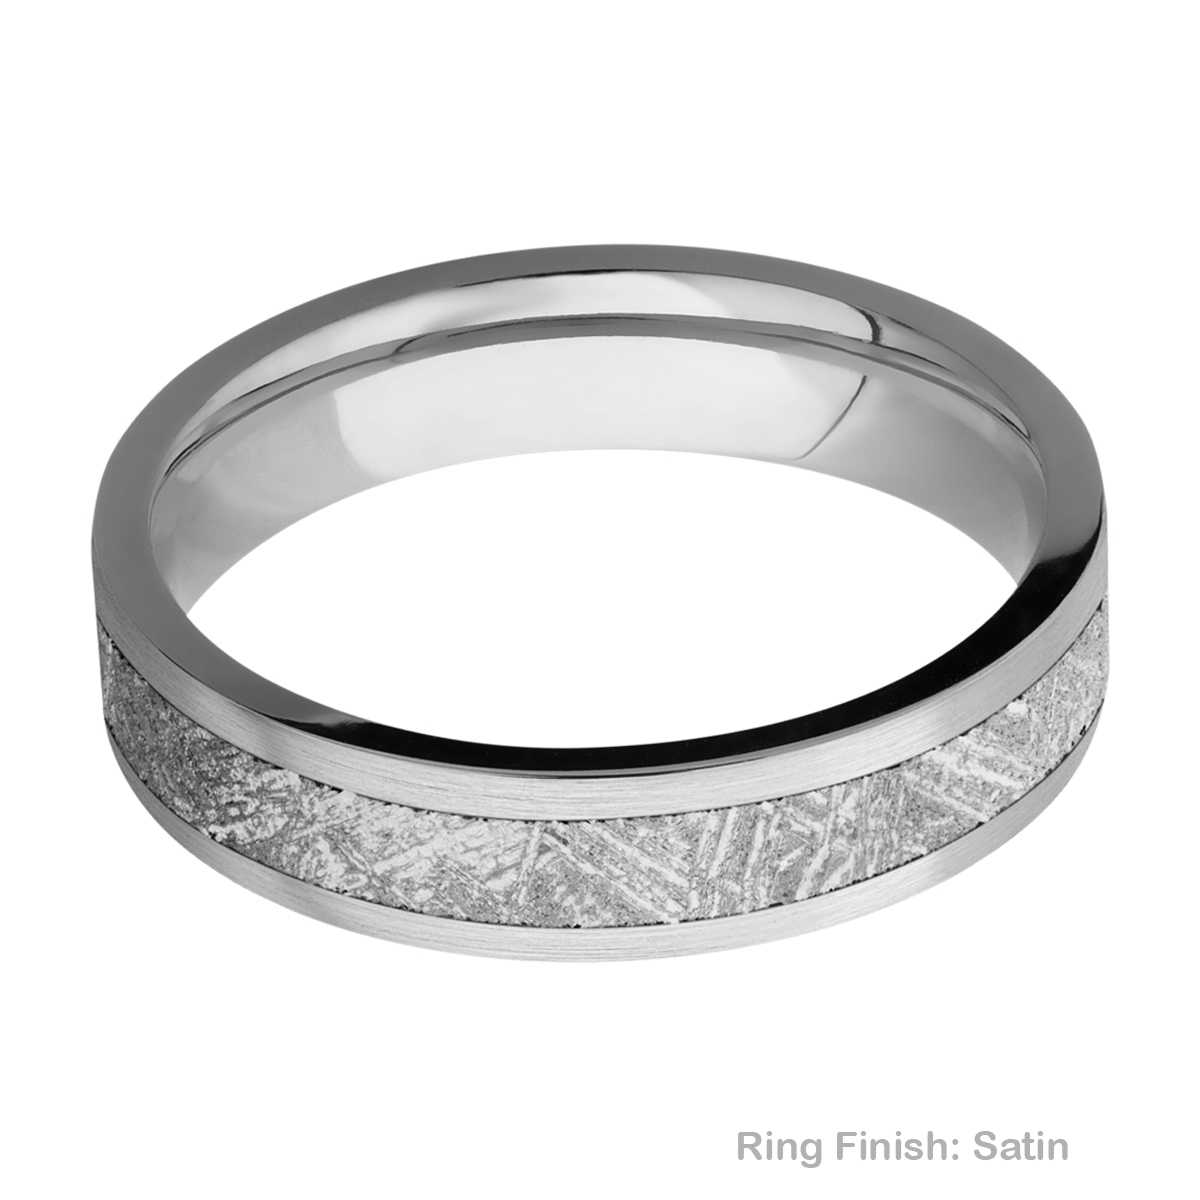 Lashbrook 5F13/METEORITE Titanium Wedding Ring or Band Alternative View 5